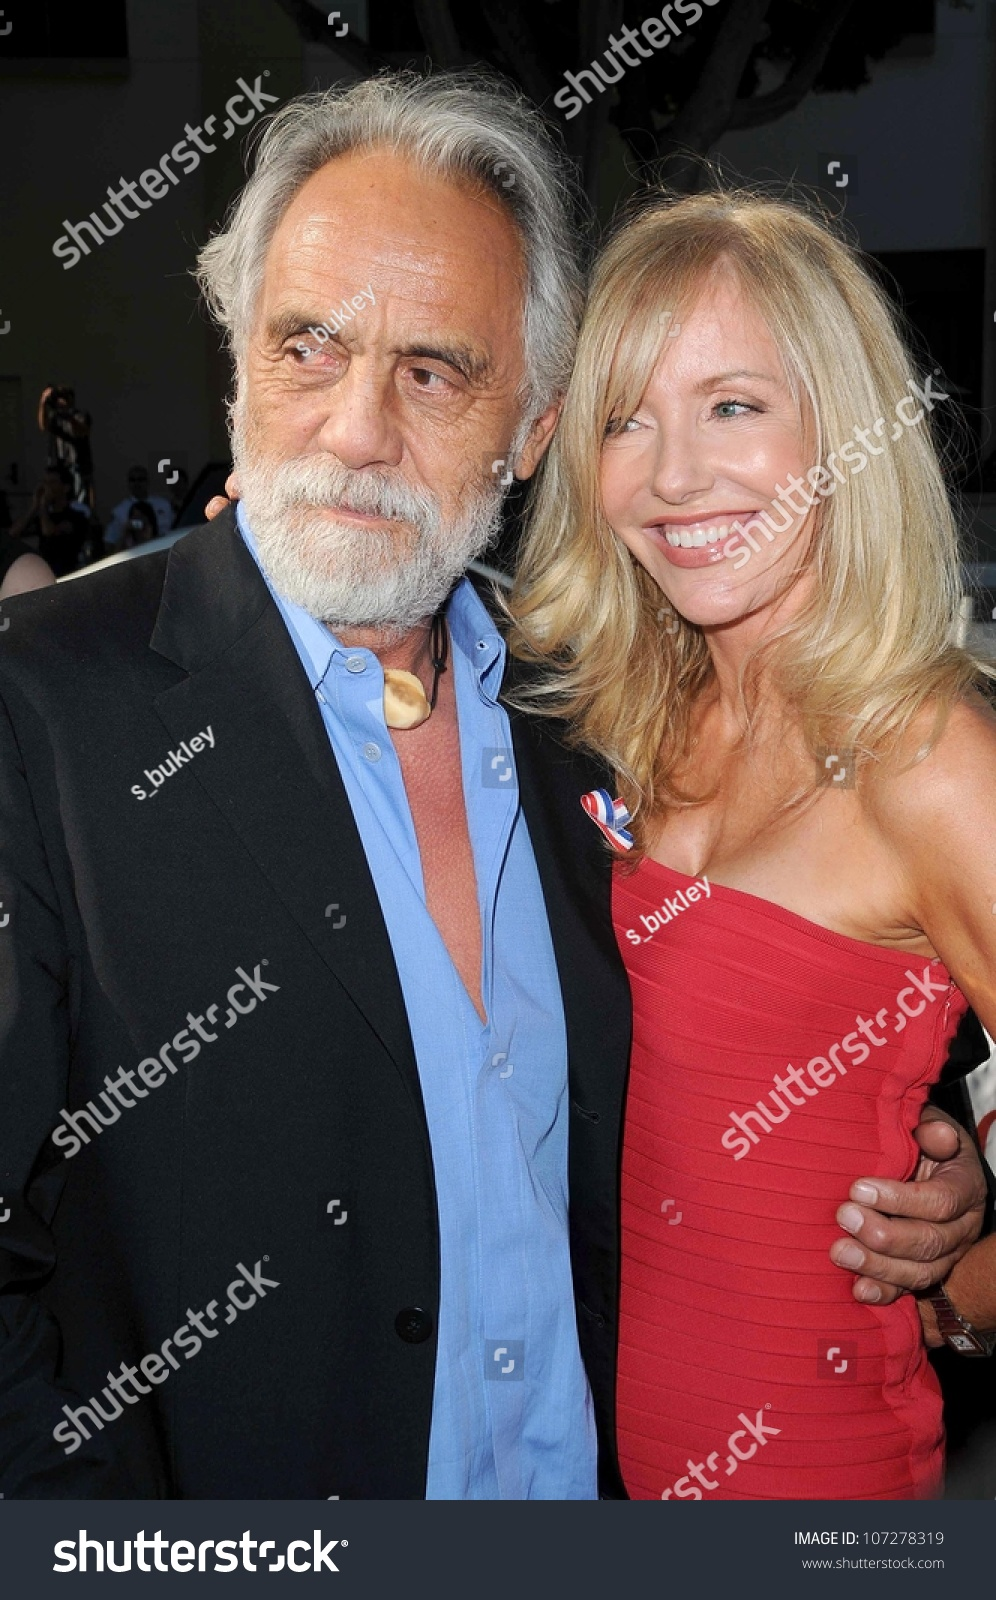 Shelby Chong Shelby Chong new pictures